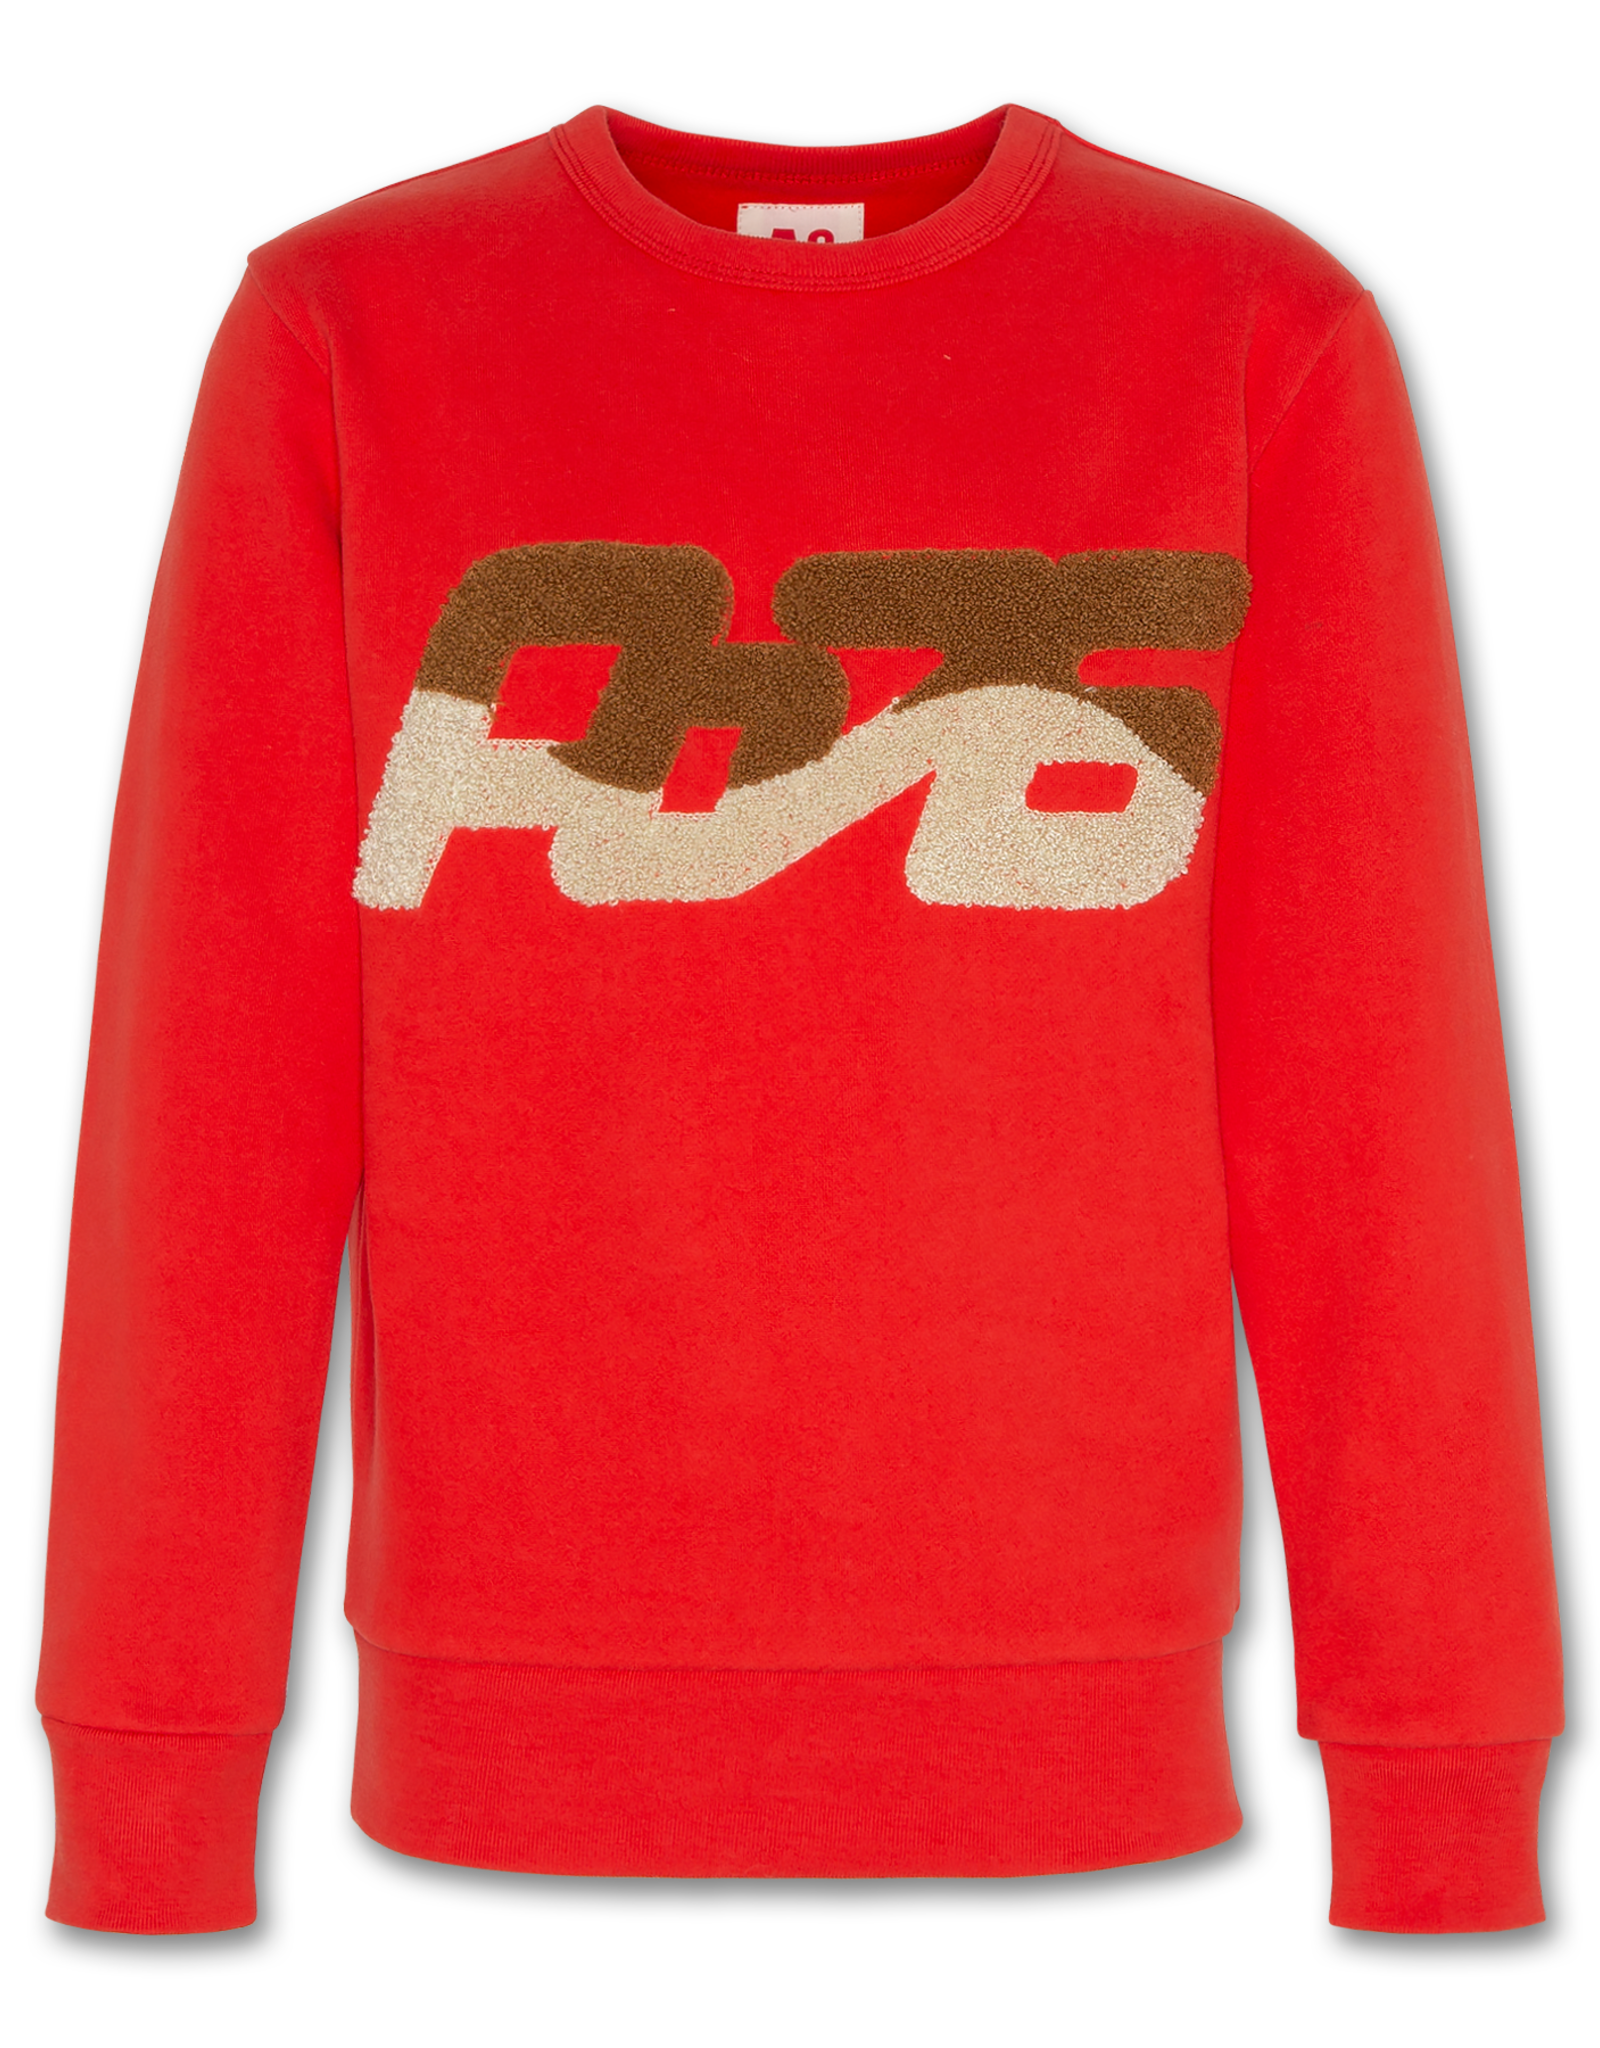 AMERICAN OUTFITTERS AO76 c-neck sweater wave red